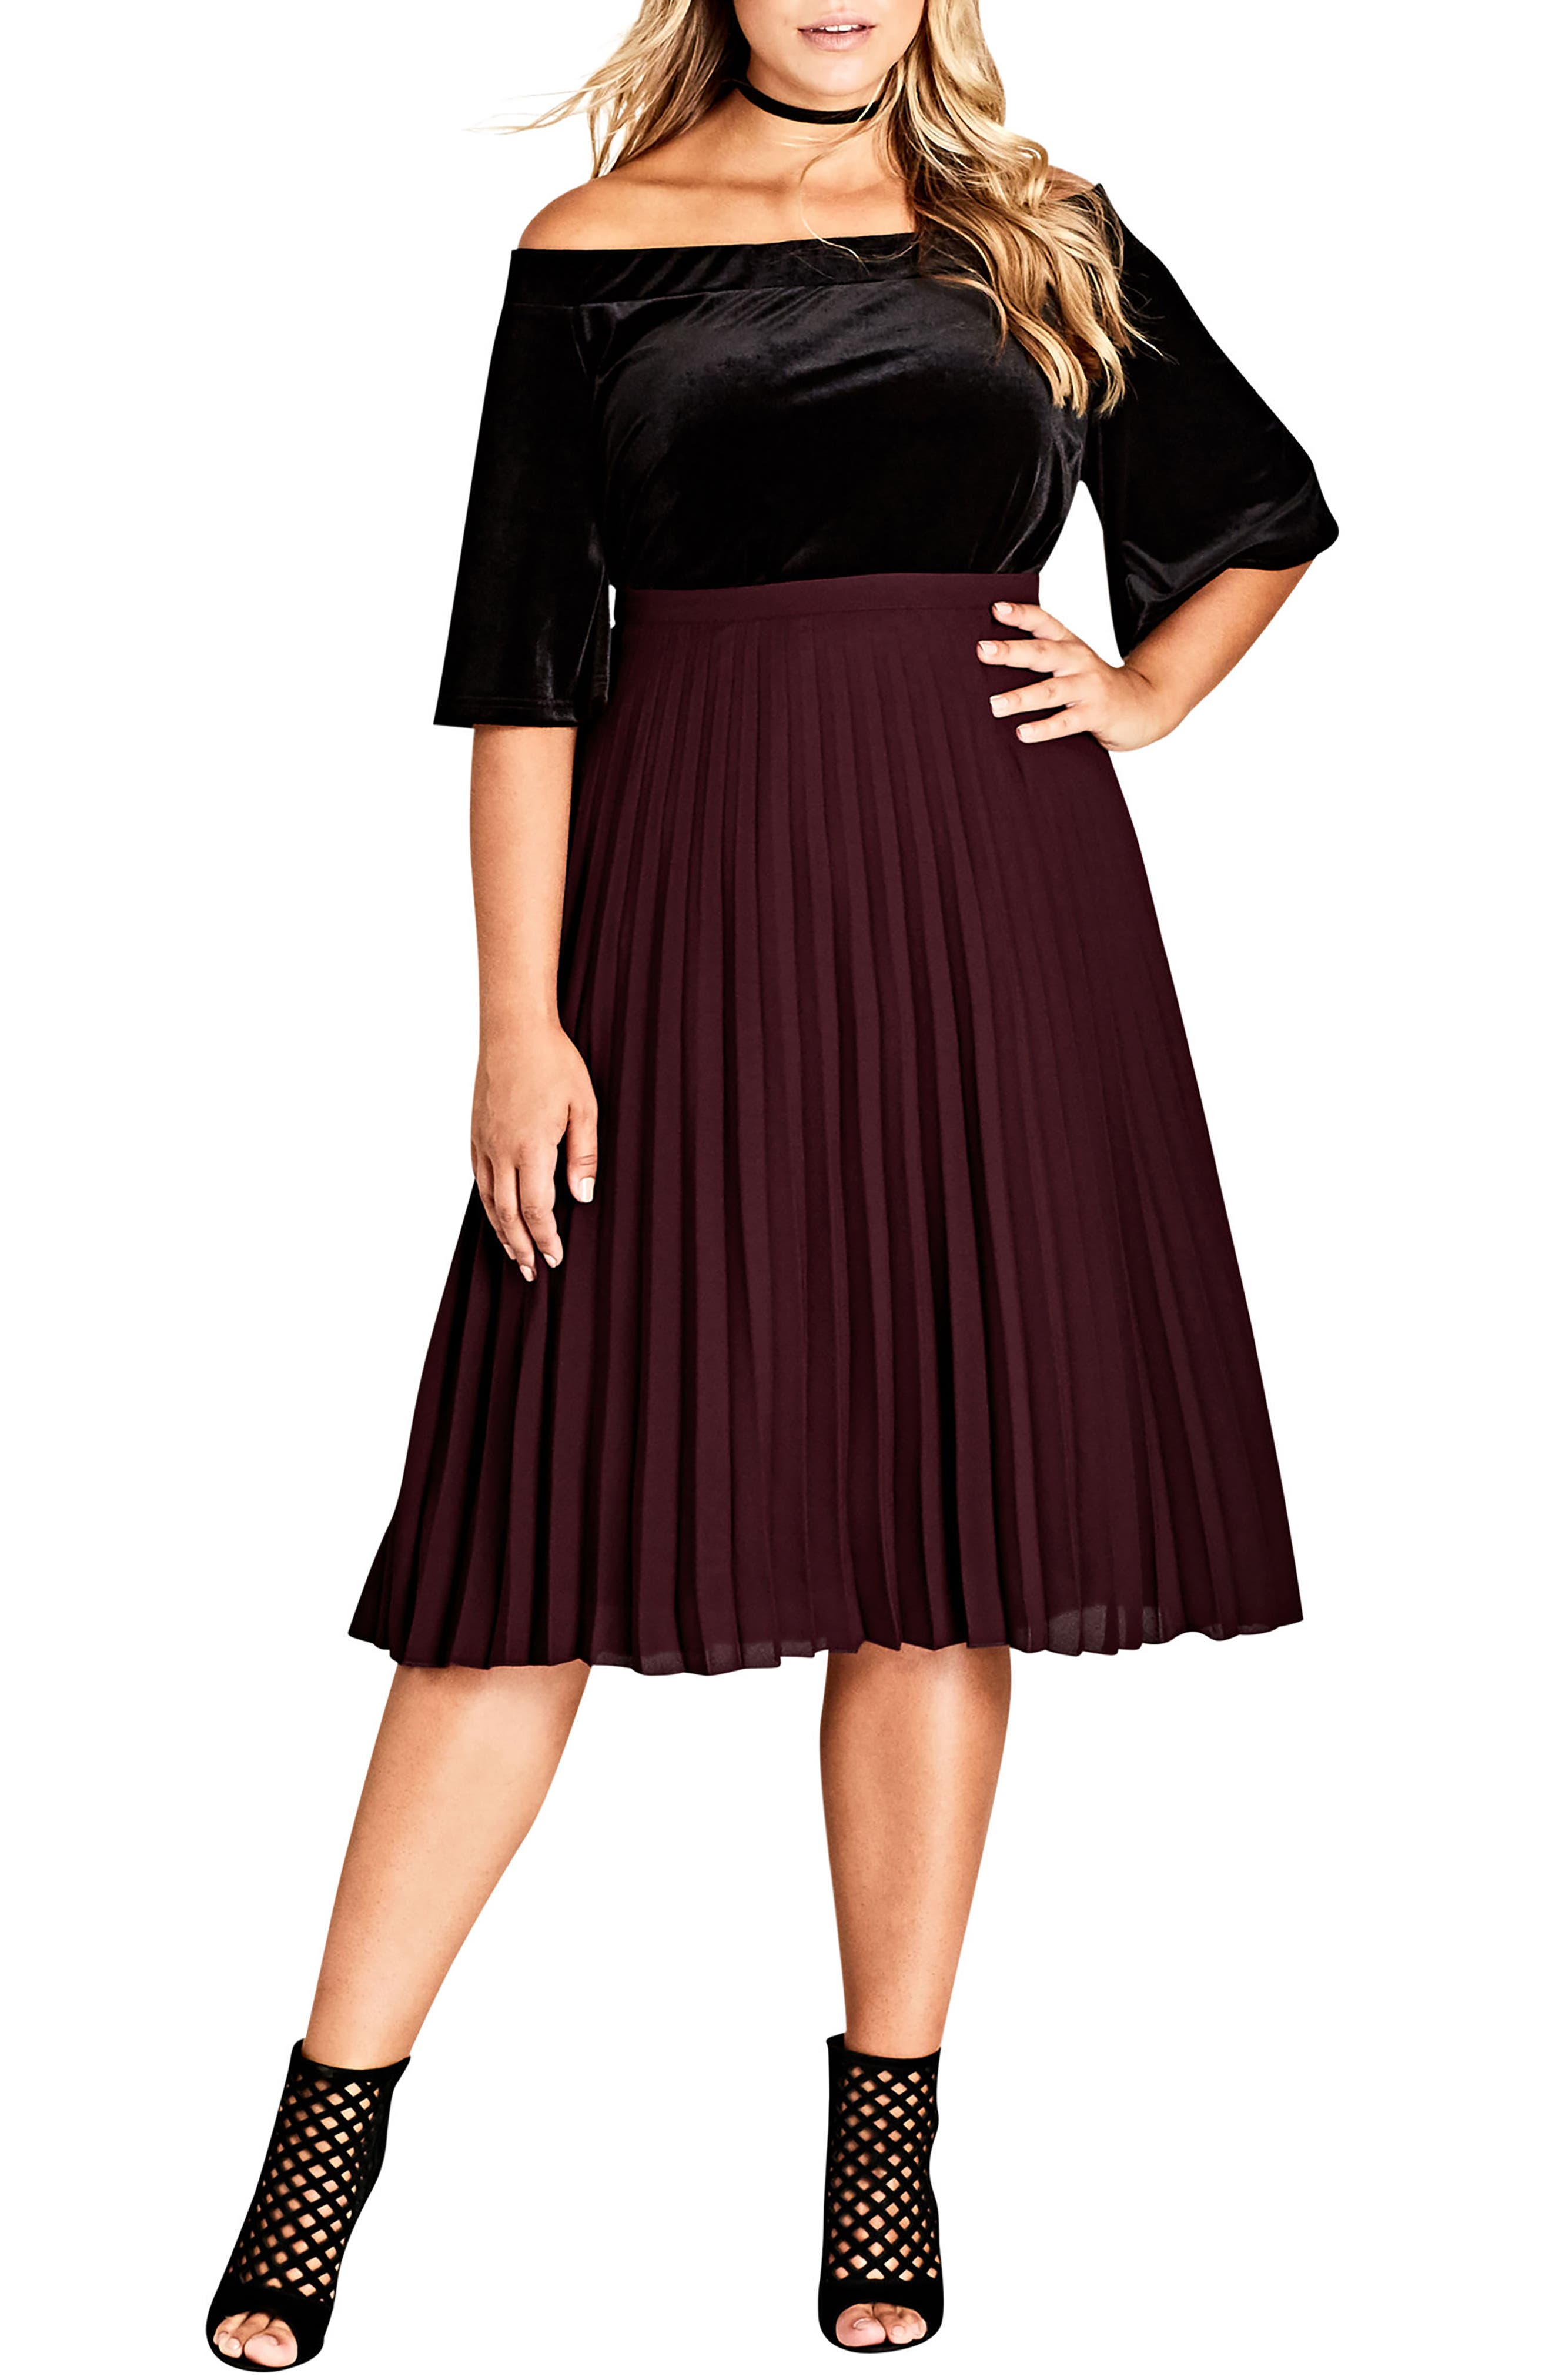 Alternate Image 1 Selected - City Chic Sheer Pleat Skirt (Plus Size)